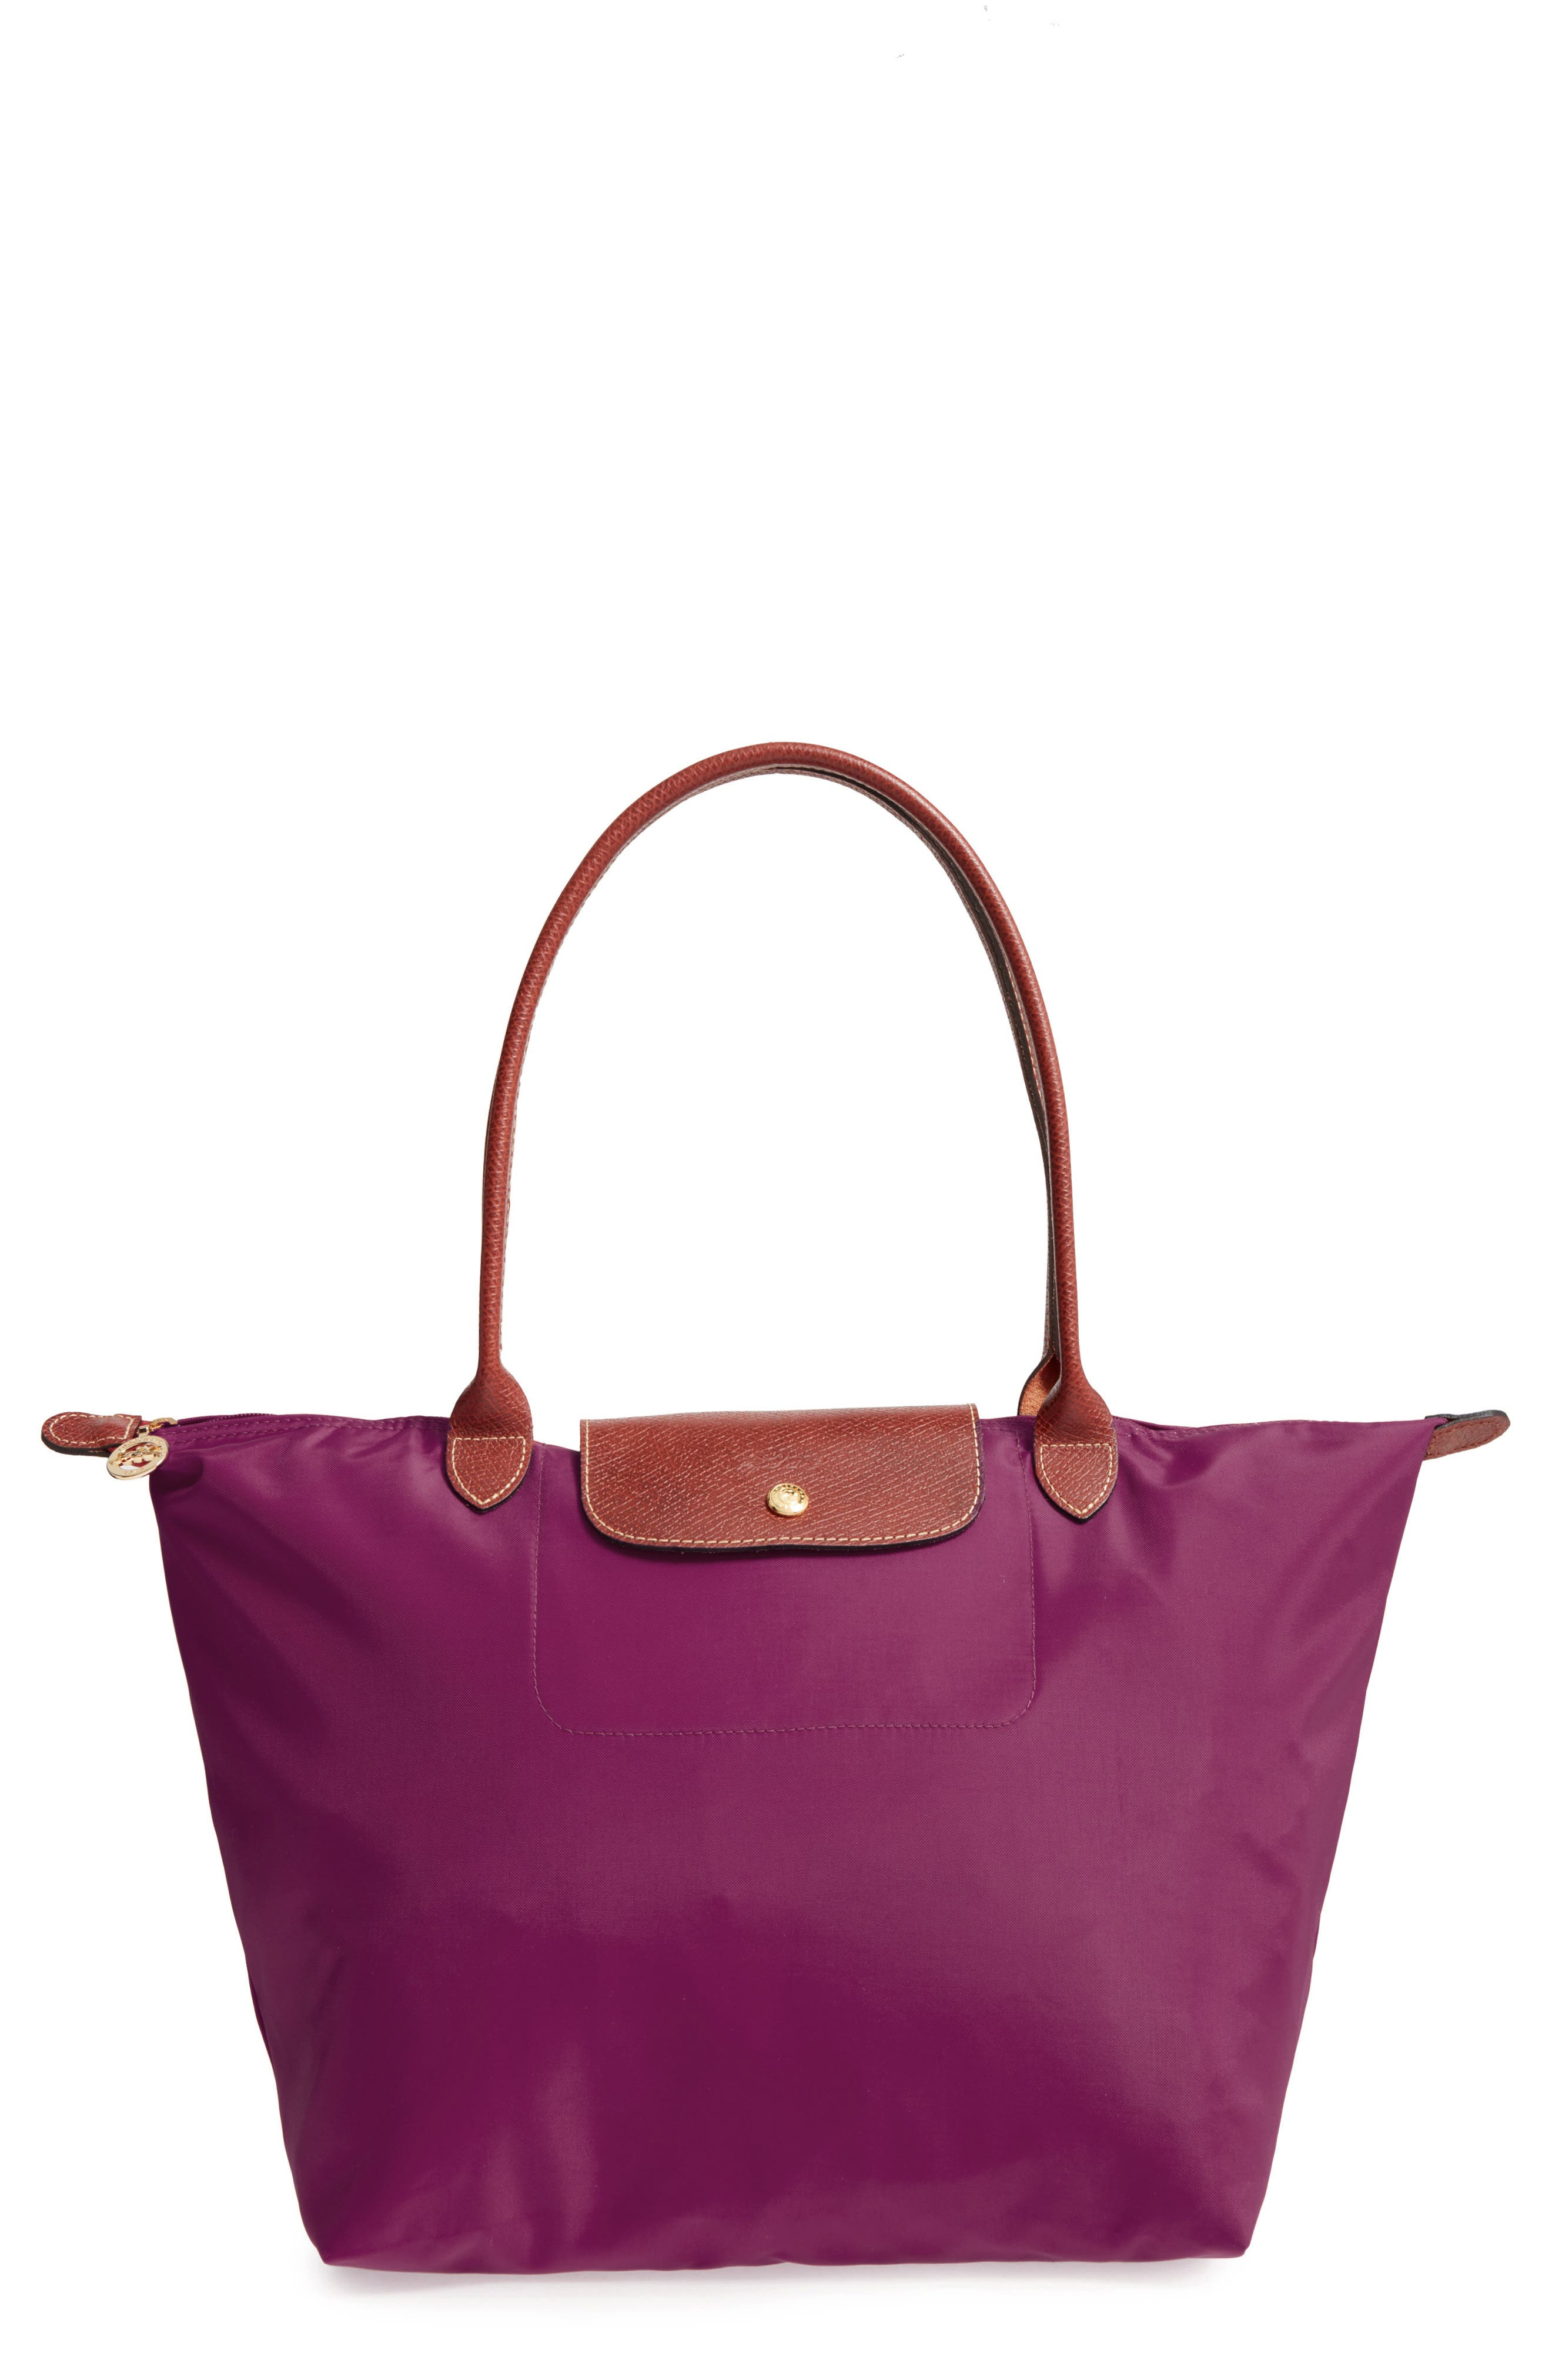 'Large Le Pliage' Tote,                             Main thumbnail 1, color,                             Dahlia